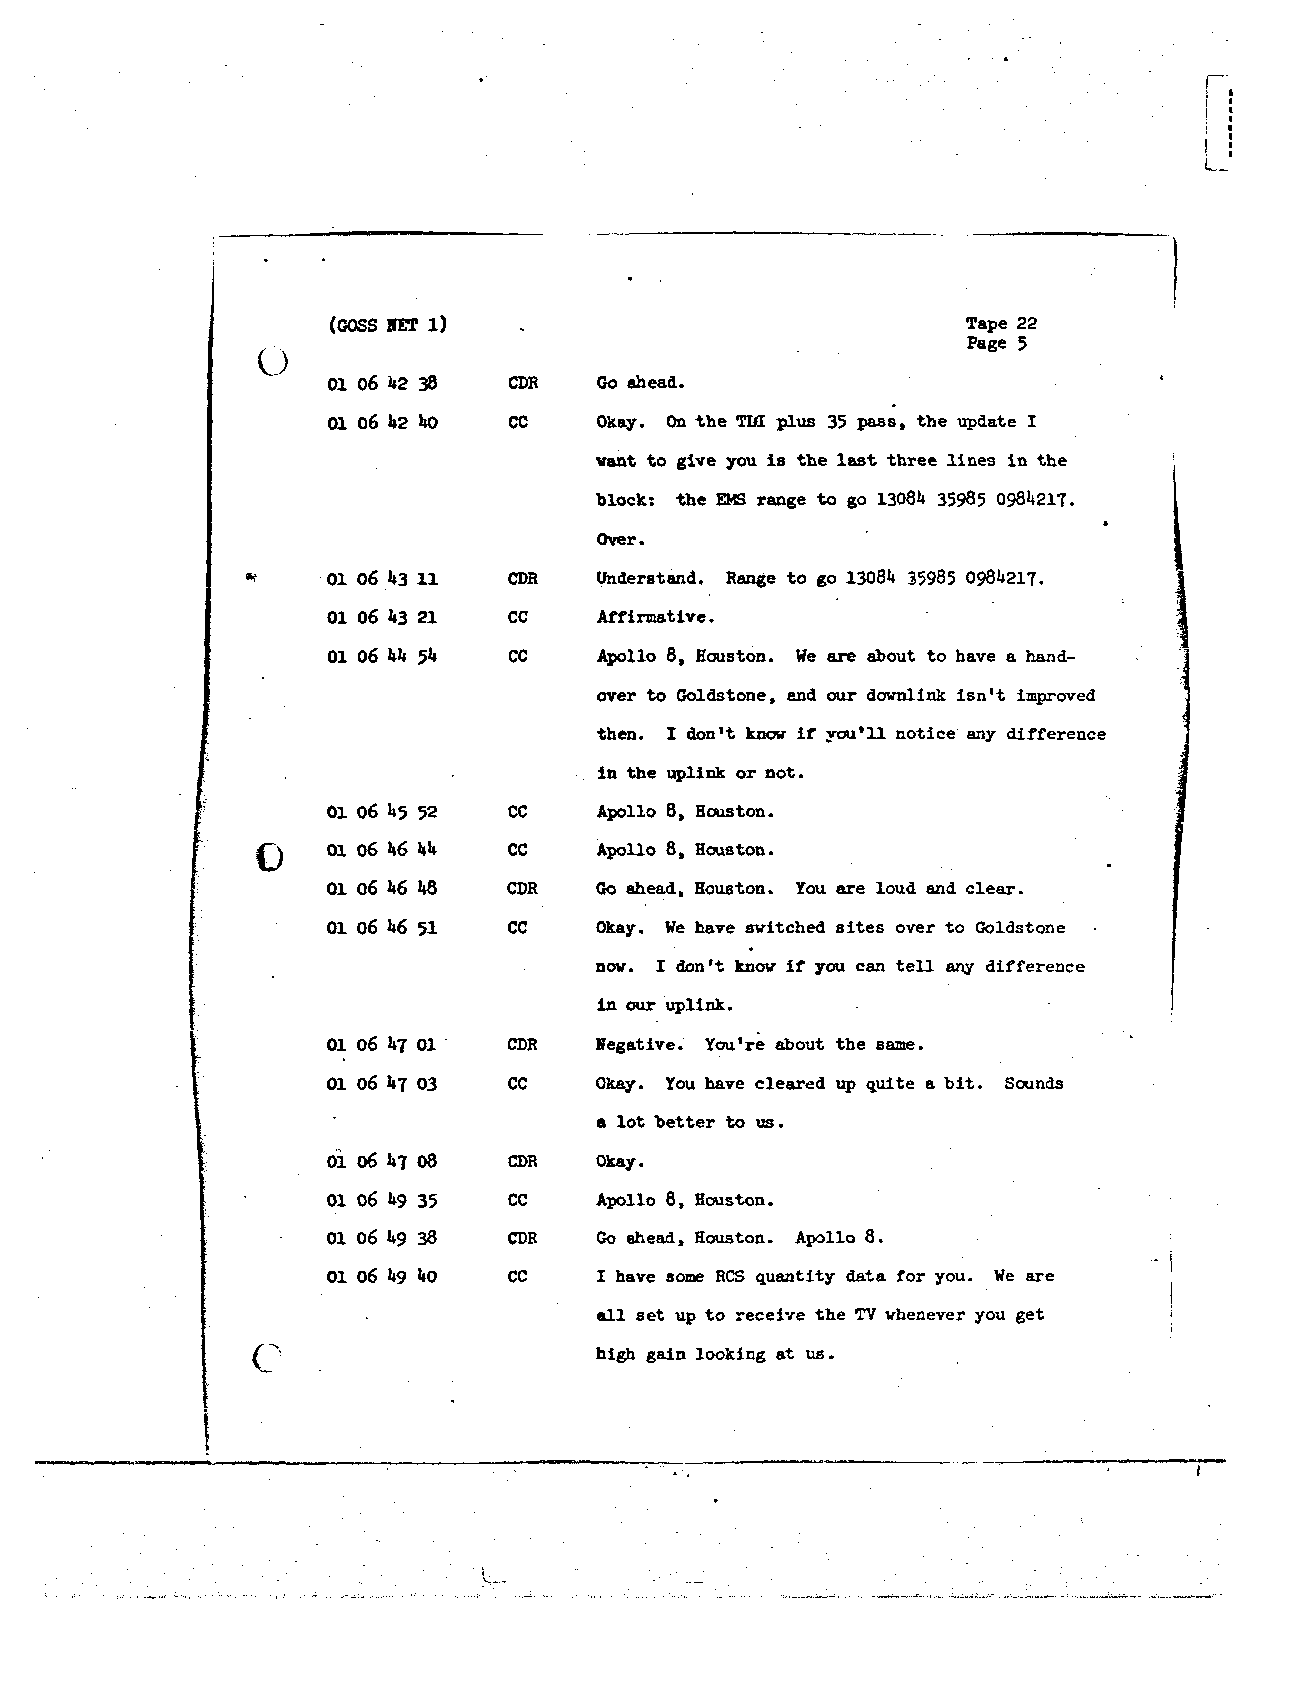 Page 168 of Apollo 8's original transcript